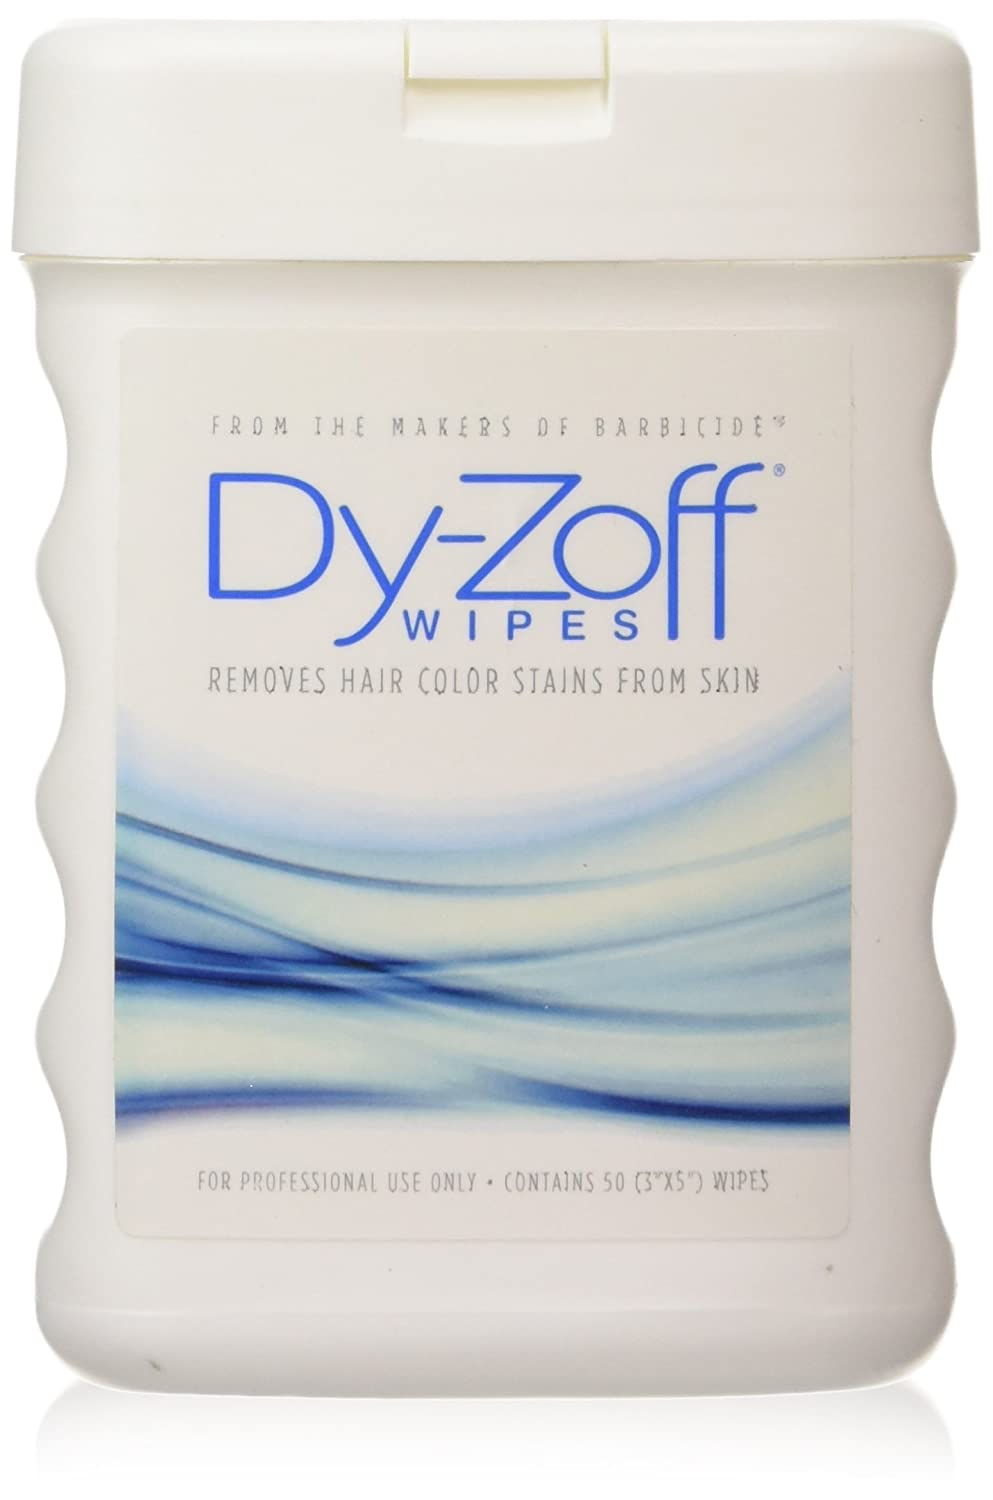 DY-Zoff Wipes Hair Stain Remover 50's Wipes 016